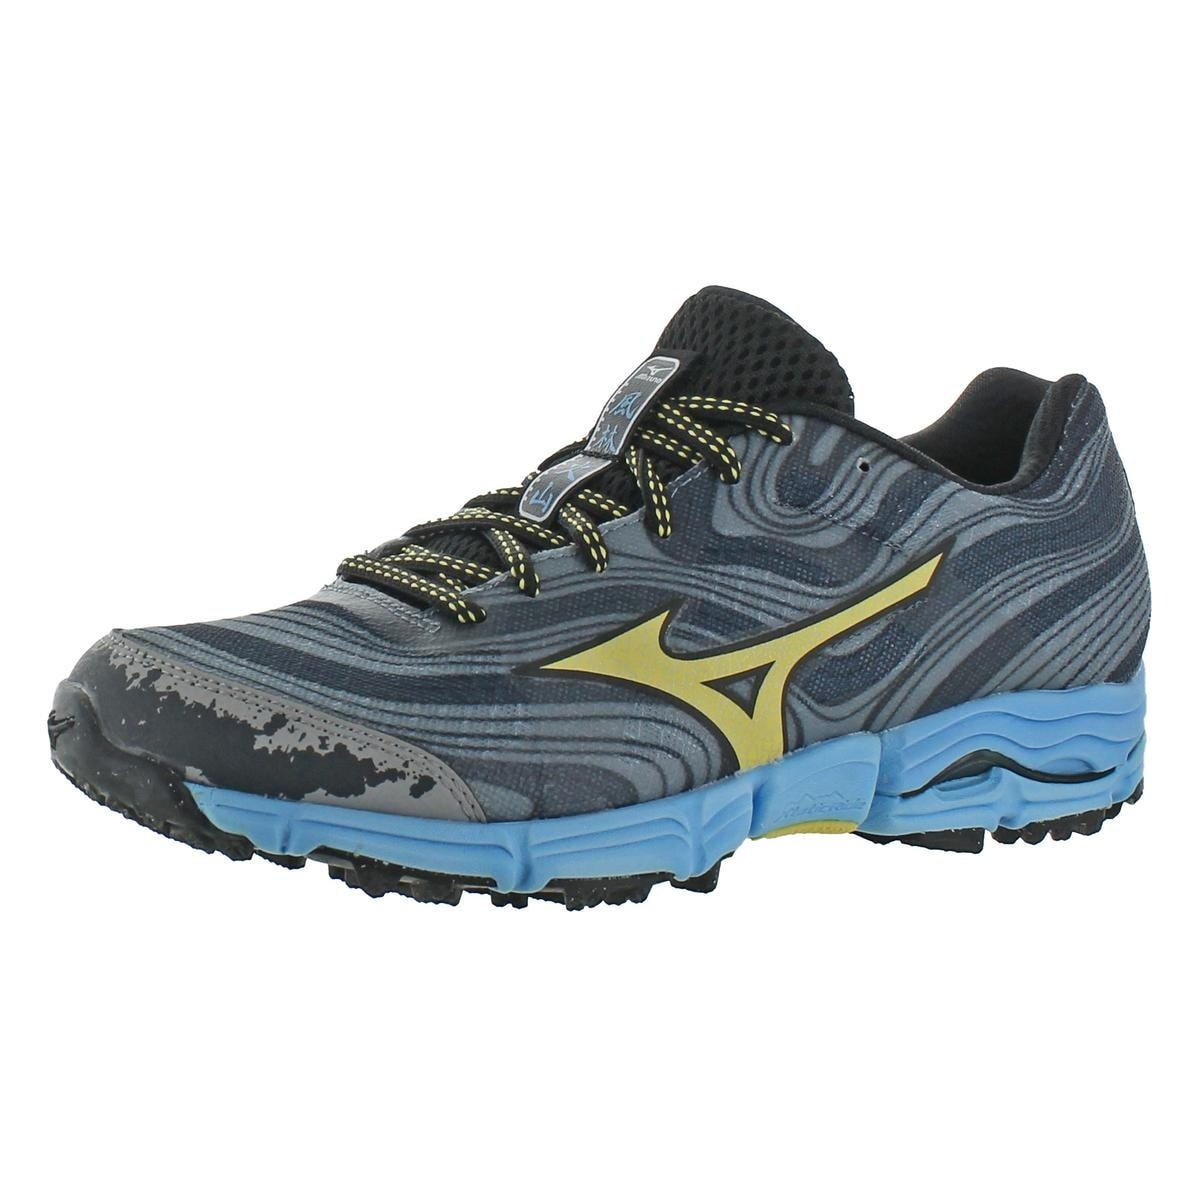 fa88711c5681 Shop Mizuno Womens Wave Kazan Running Shoes XtaticRide Fitness - Free  Shipping On Orders Over $45 - Overstock - 22680121